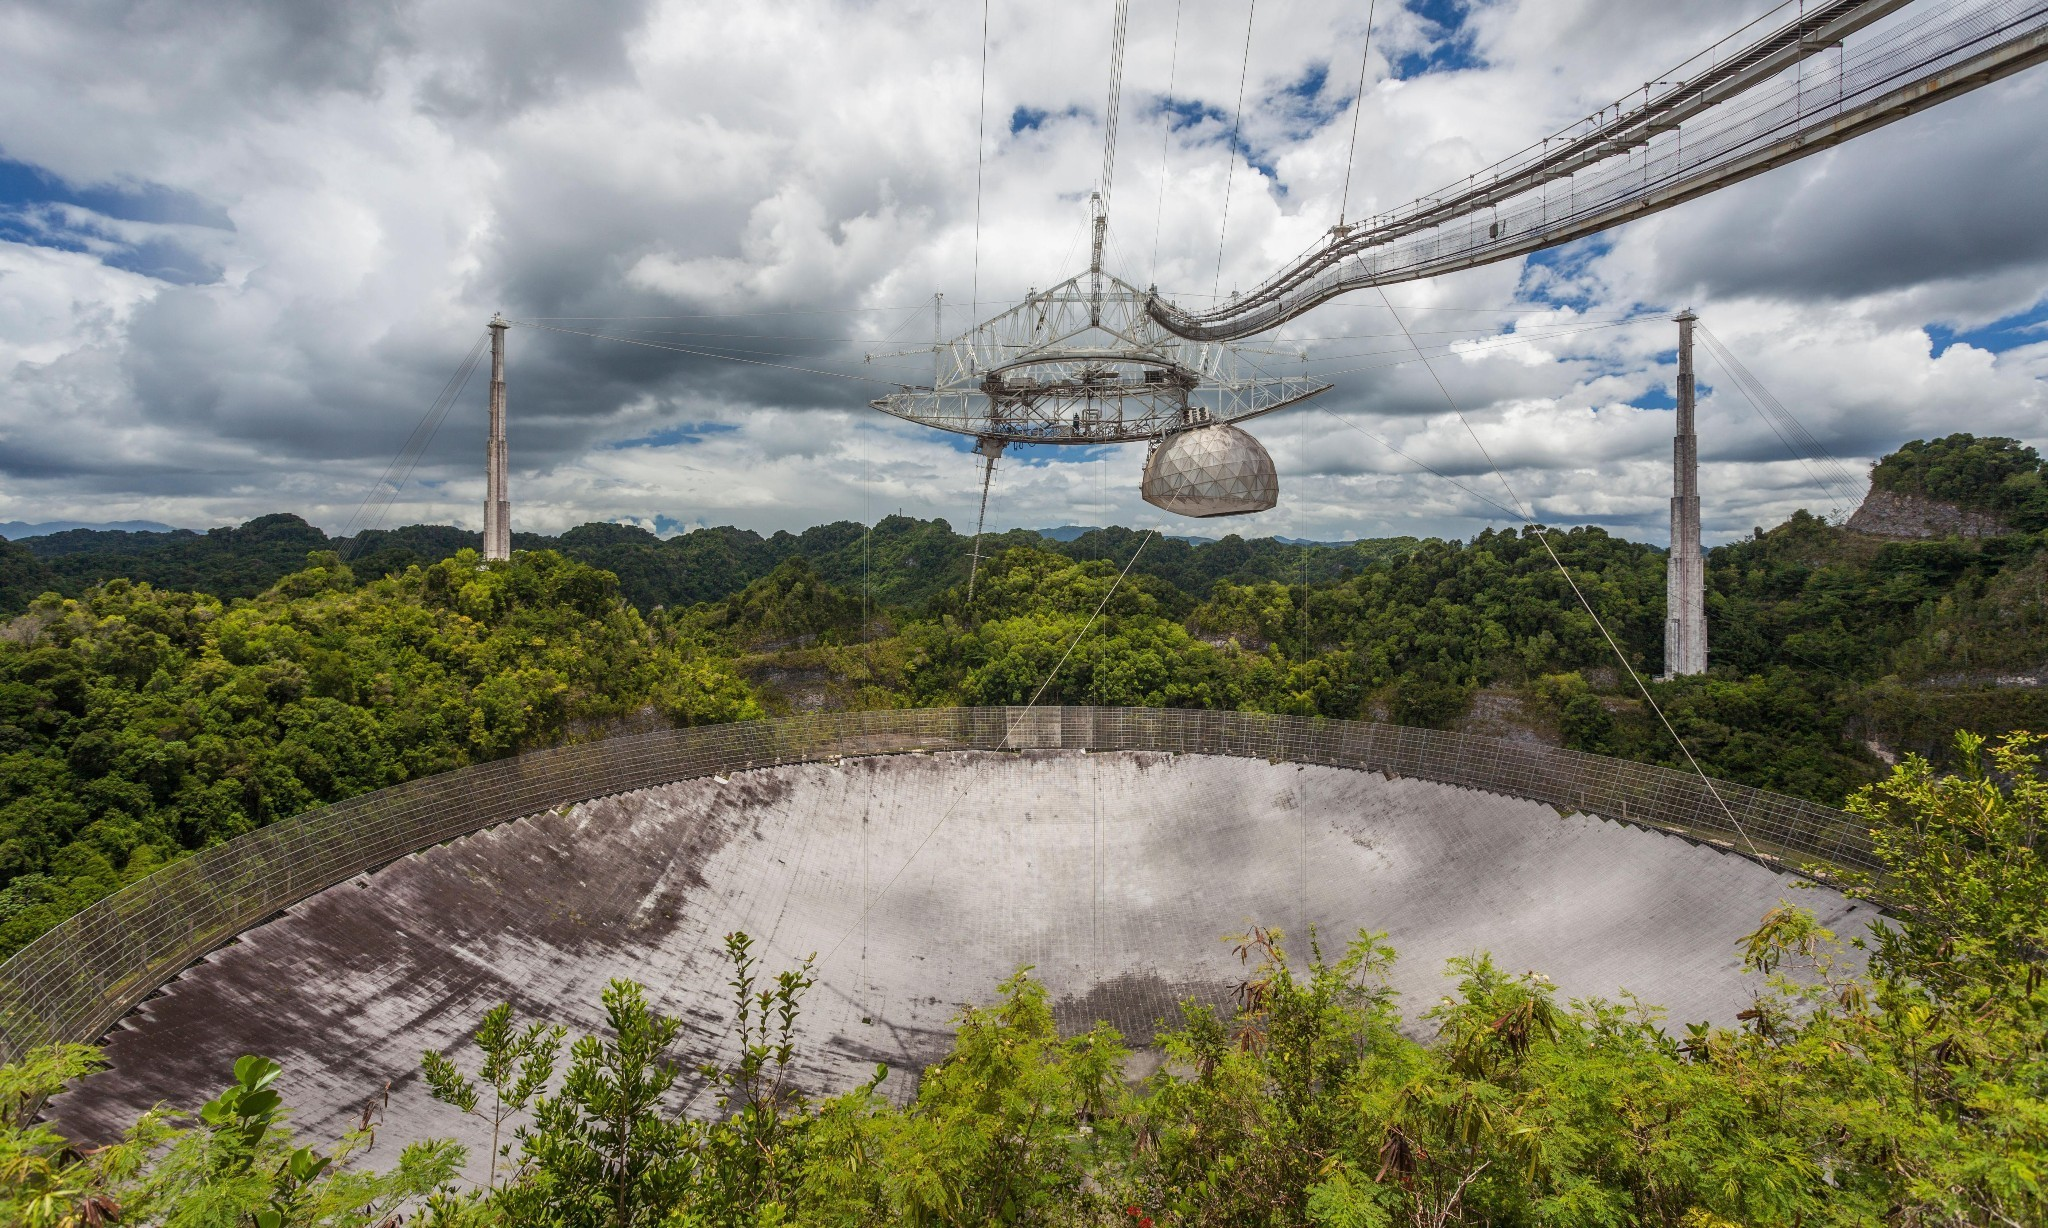 Giant Arecibo telescope faces closure